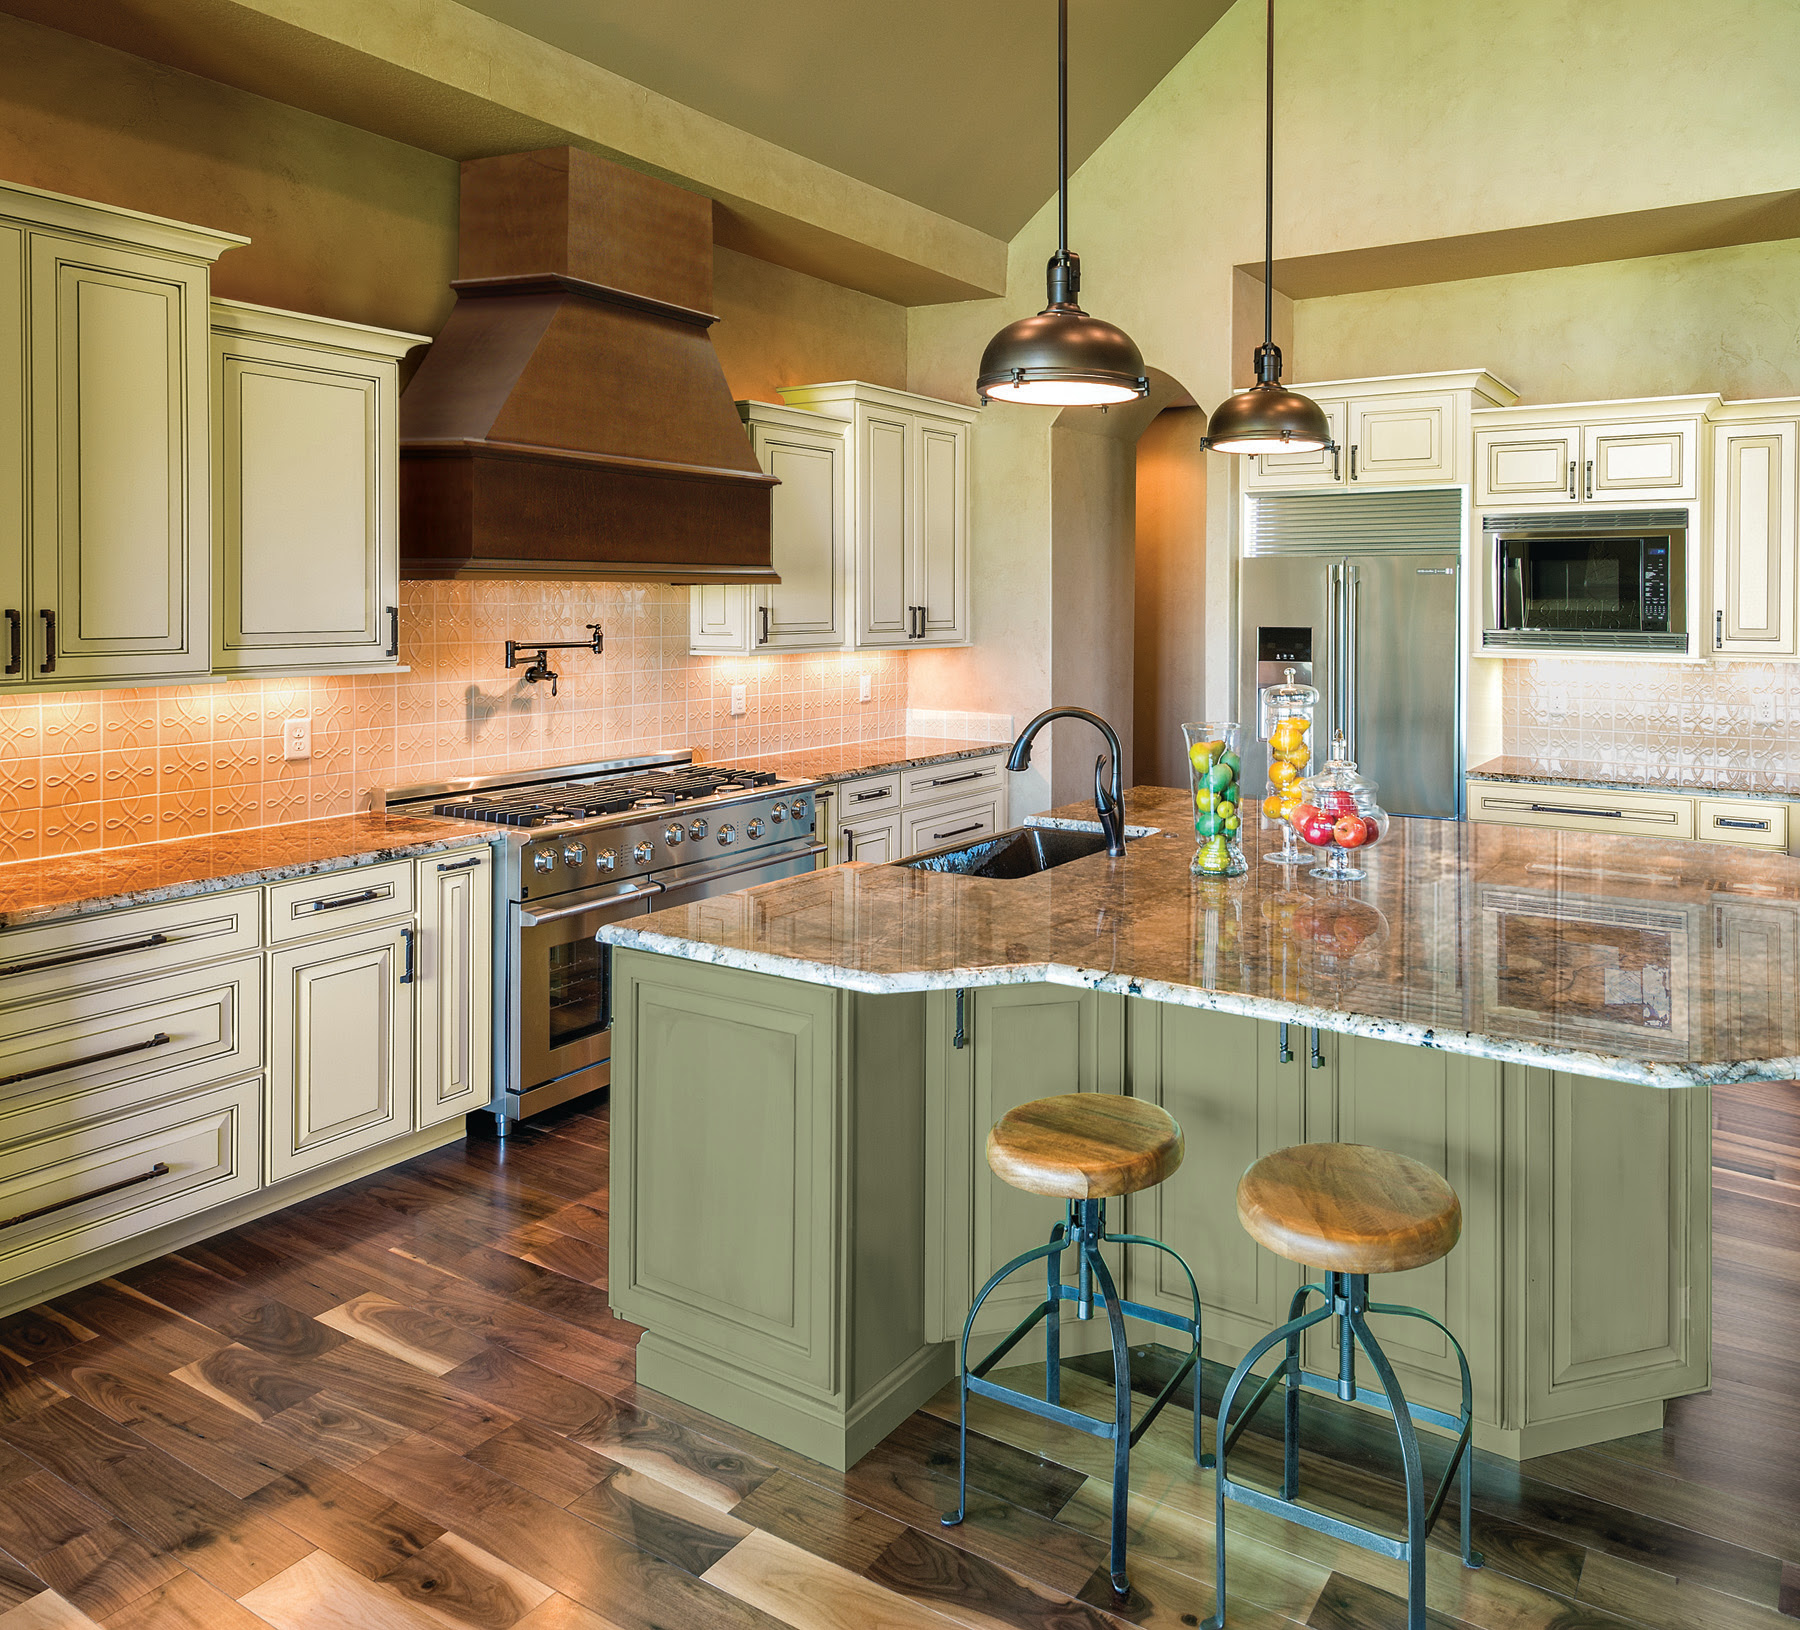 New Paint Colors Bring High-Fashion Home to Kitchen ...